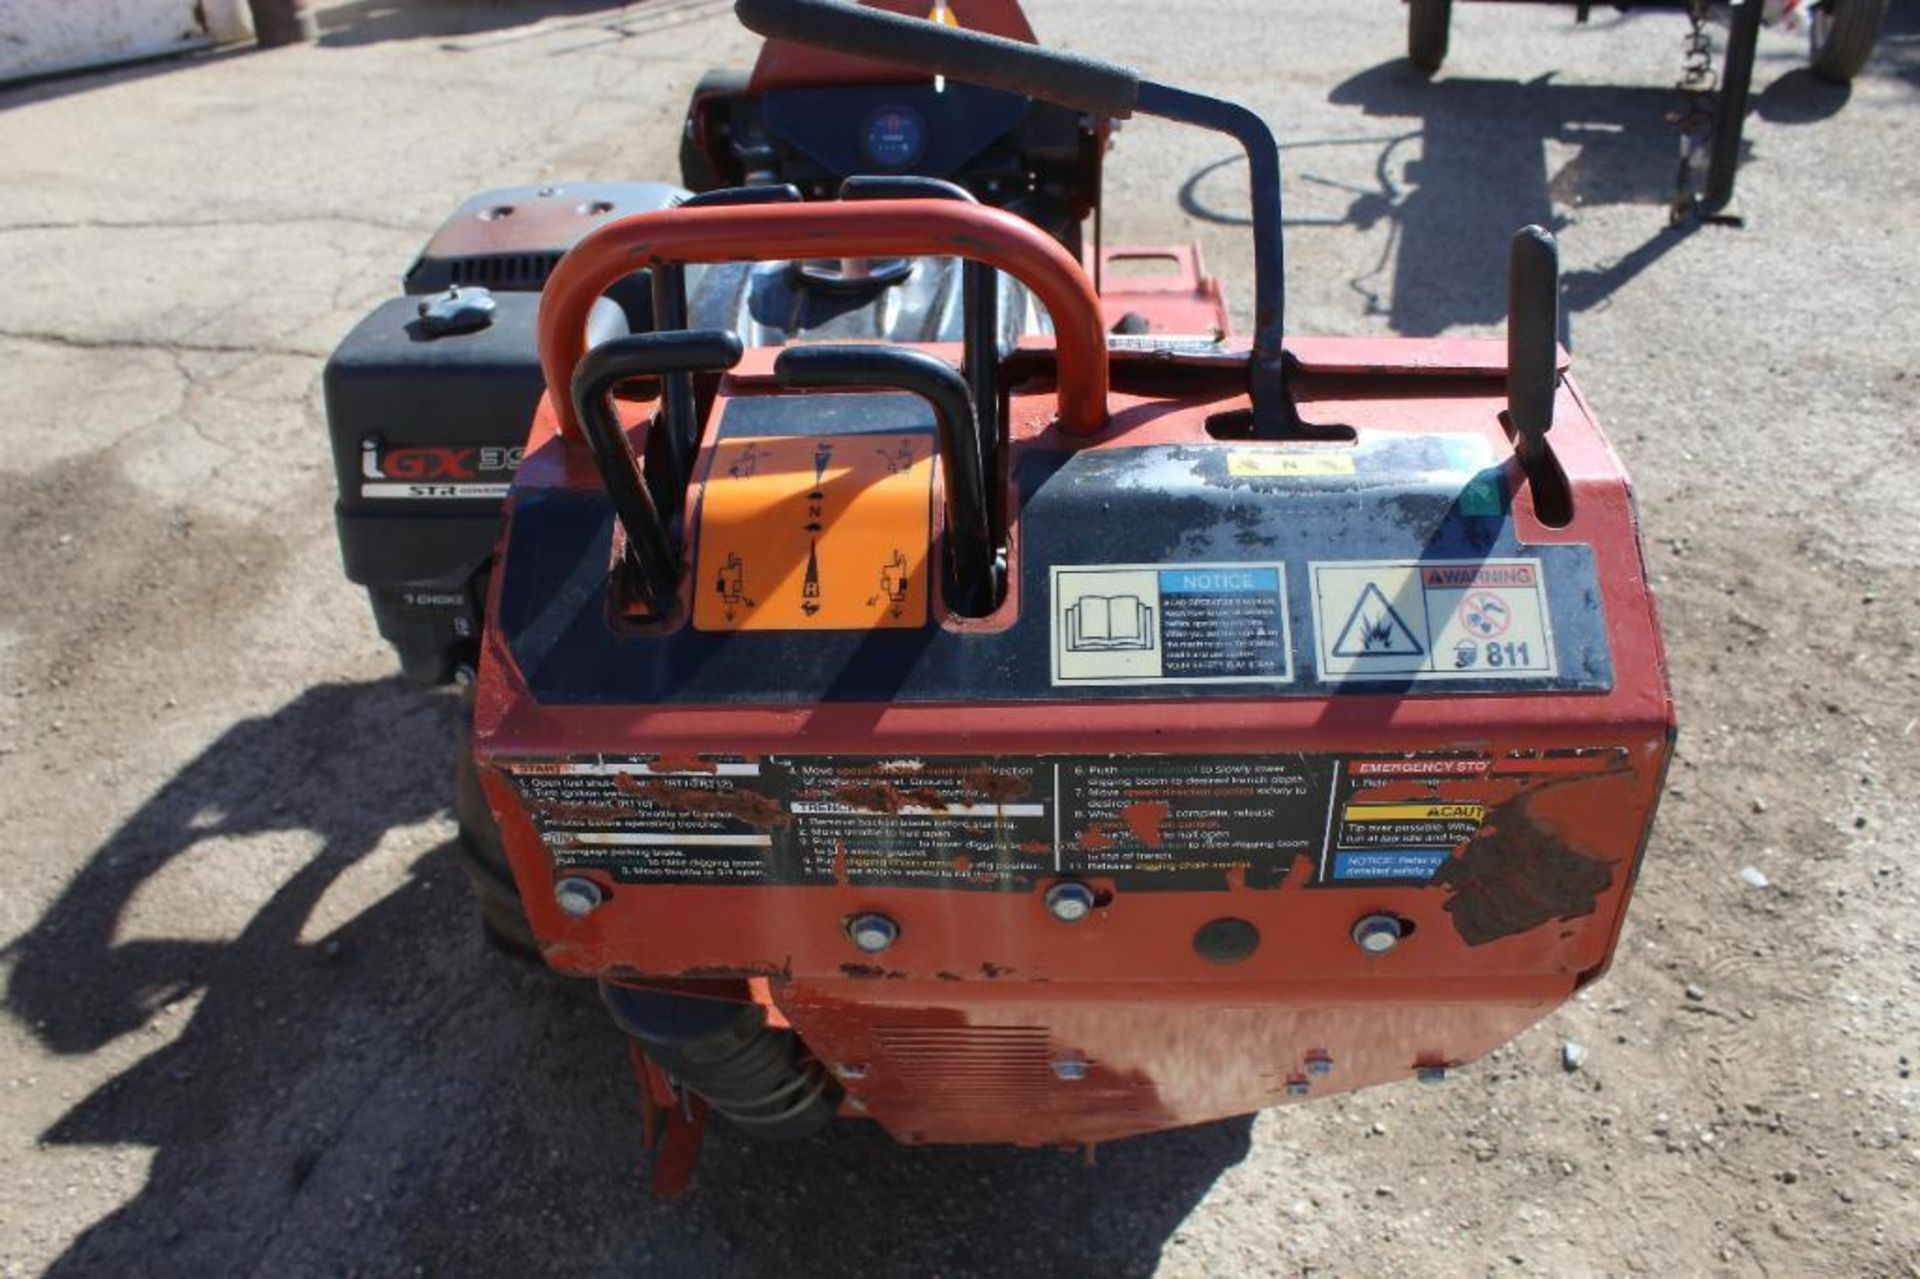 2012 Ditch Witch RT 12 Walk Behind Trencher, S/N CMWRT12JC0001567, 260 Indicated Hours - Image 3 of 4